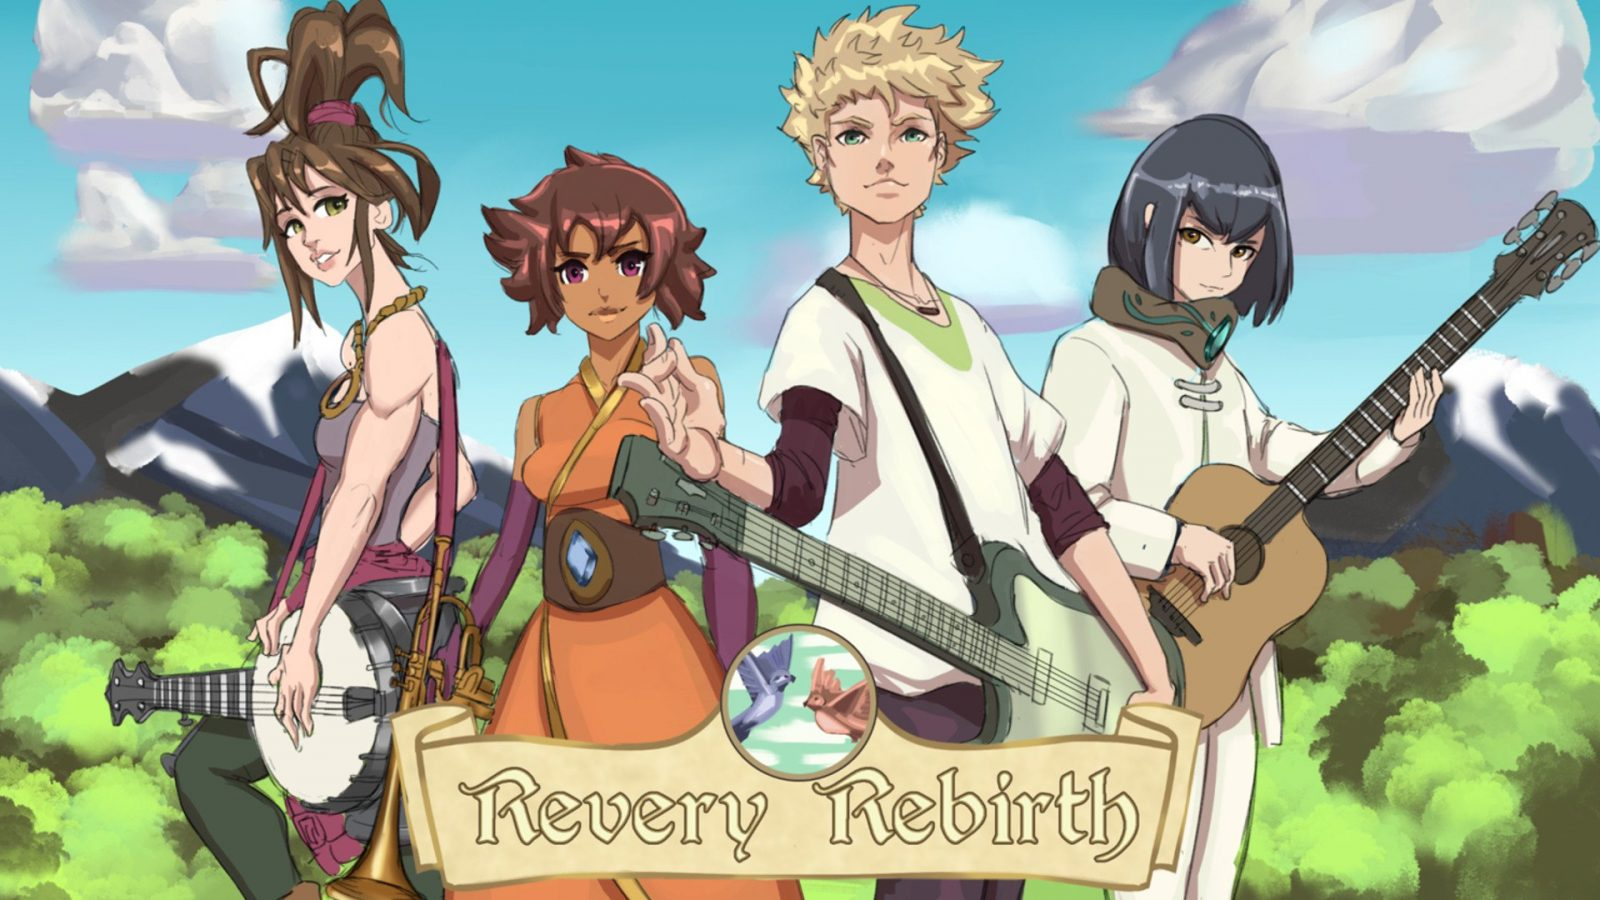 Play NYC Indie RPG Revery Rebirth Combines Music and Magic; Coming to Kickstarter September 1st